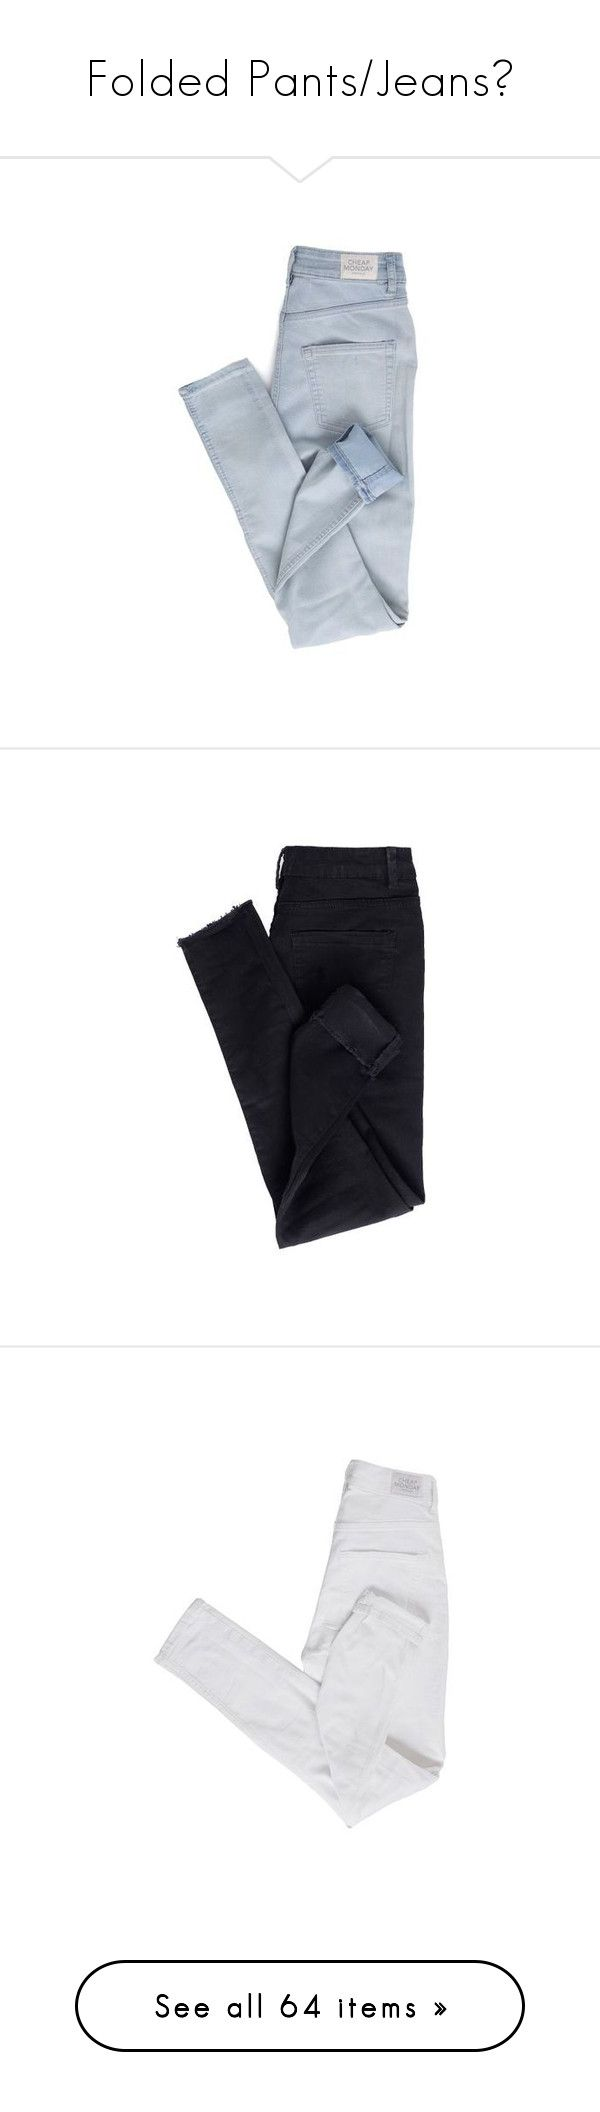 """""""Folded Pants/Jeans♥"""" by yexyka ❤ liked on Polyvore featuring pants, leggings, blue denim leggings, cheap monday, jeggings leggings, blue jeggings, light blue trousers, jeans, urban jeans and classic fit jeans"""